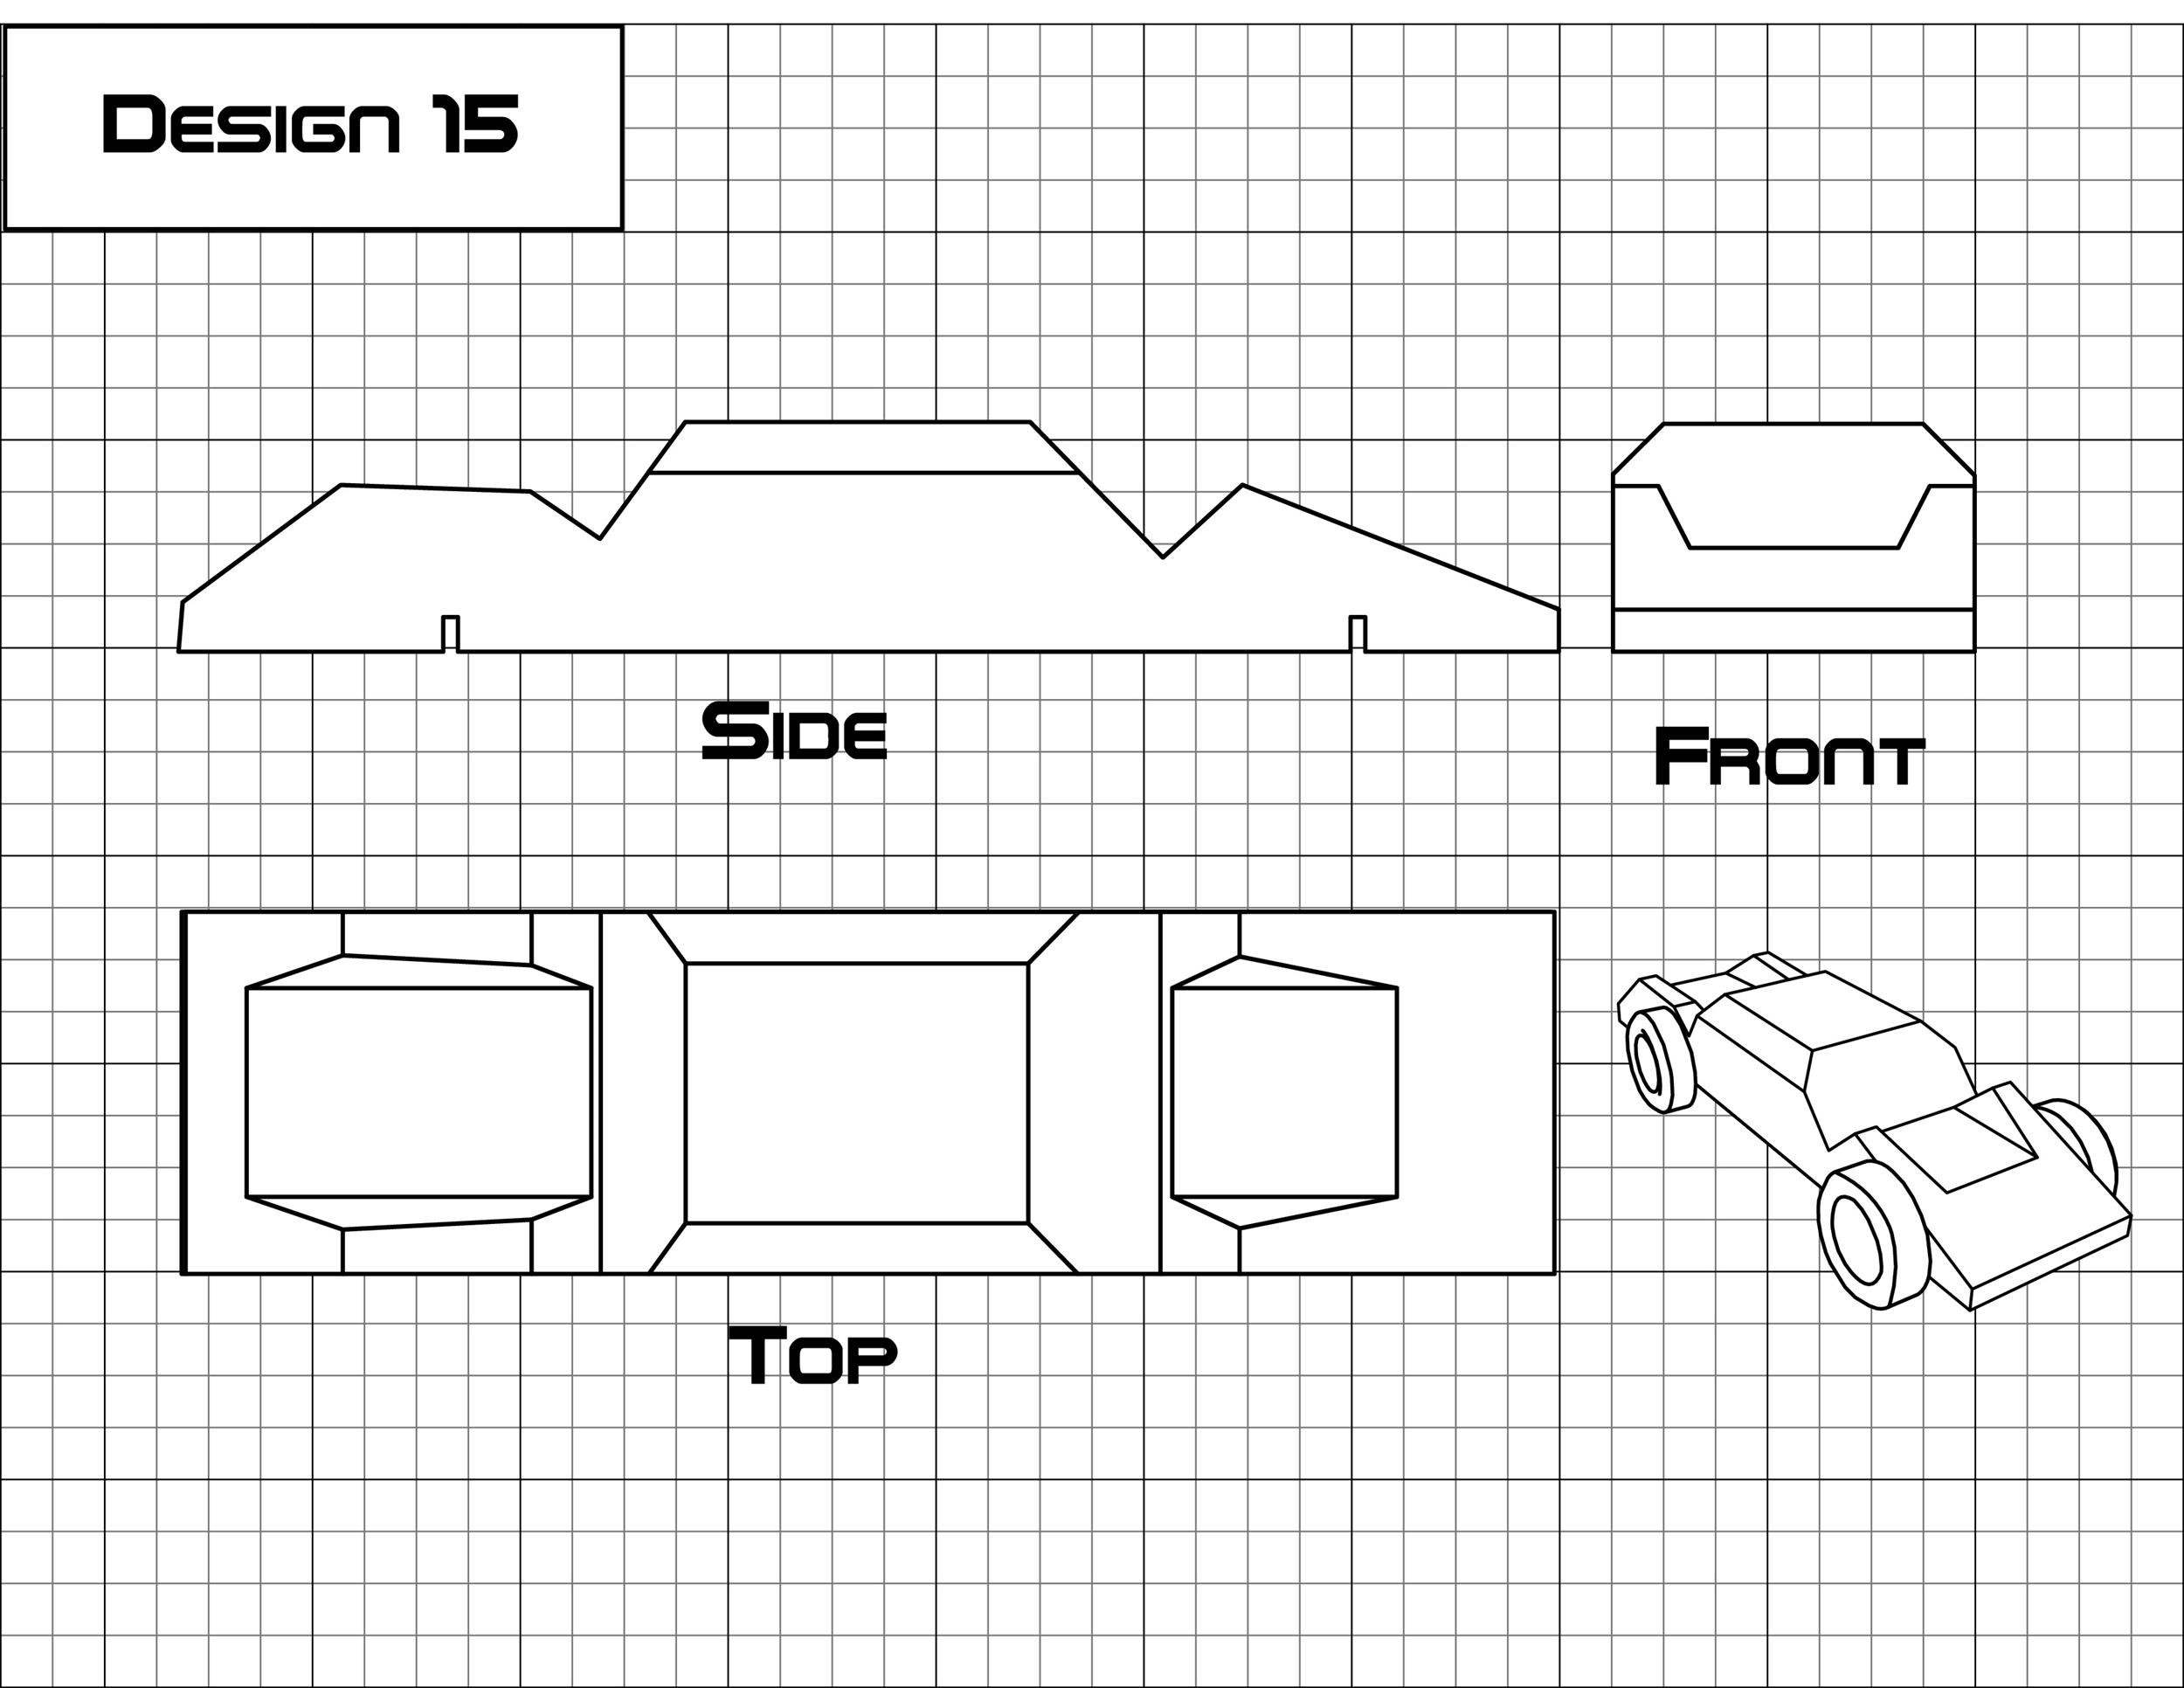 39 Awesome Pinewood Derby Car Designs  Templates - Template Lab